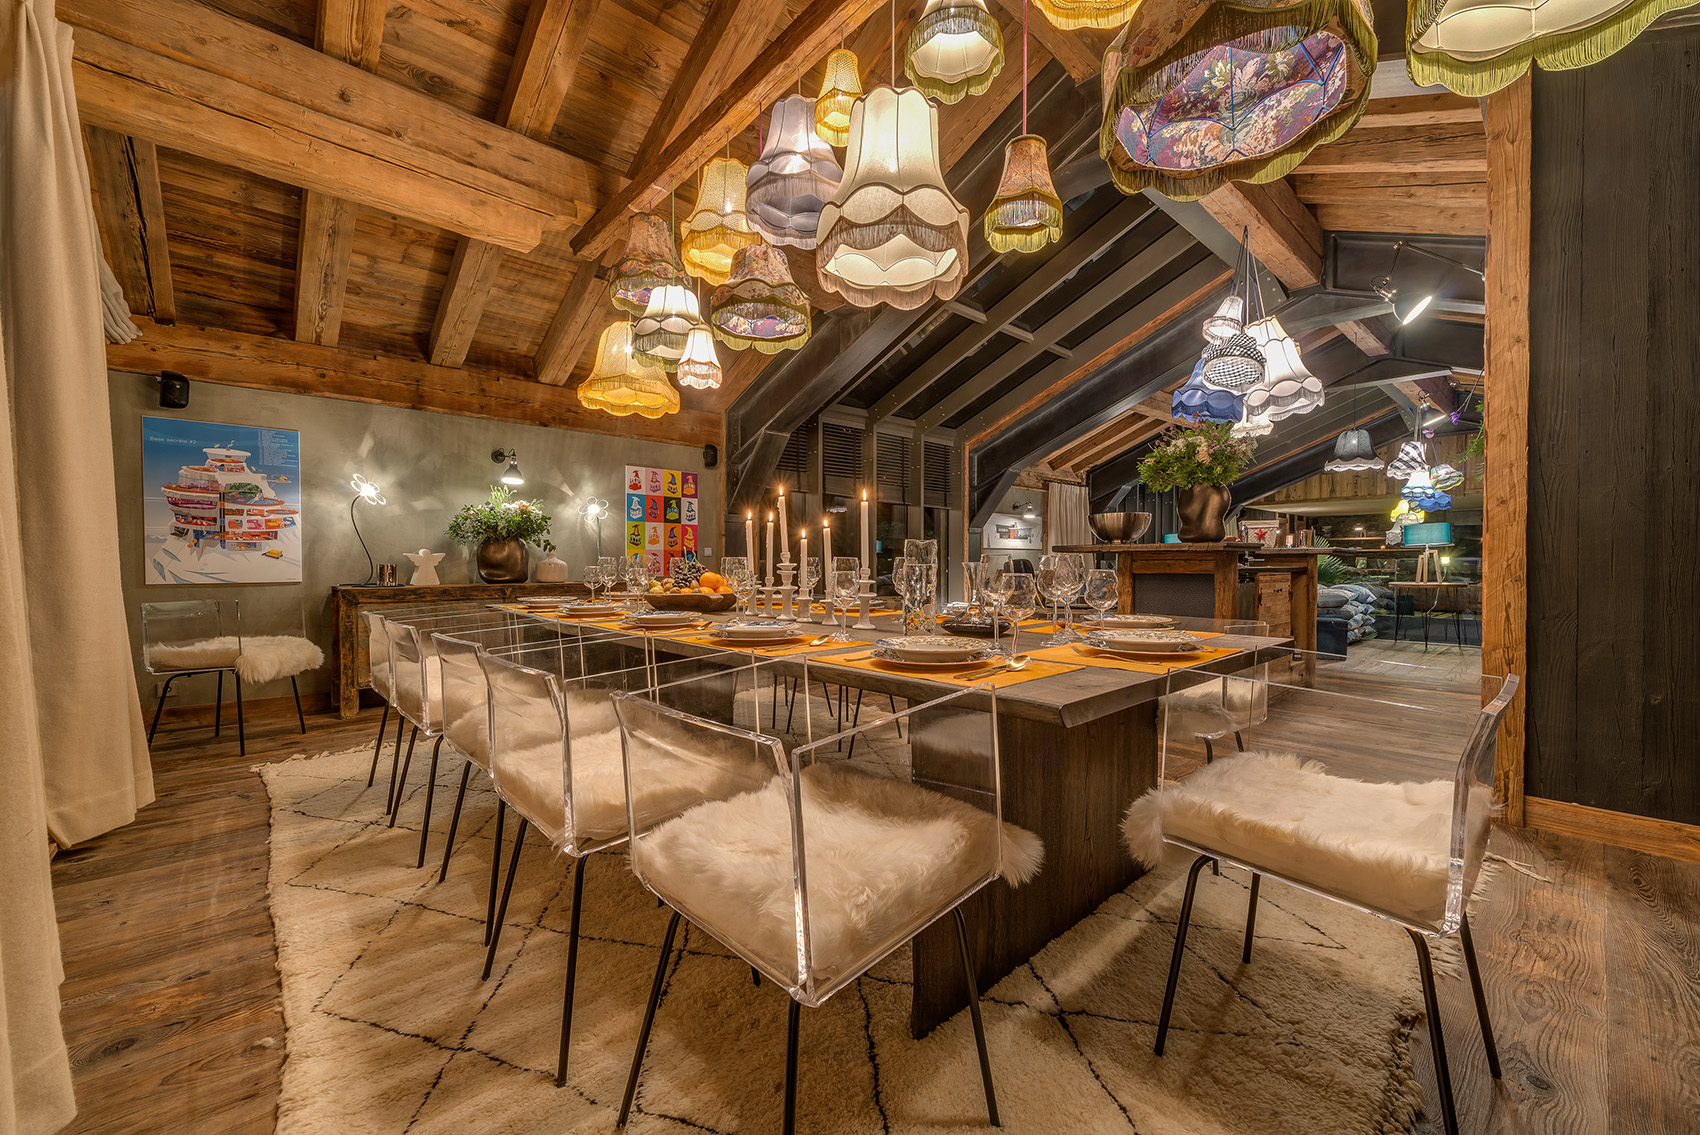 Ski Chalet Interior Design europe's 11 best luxury ski chalets | cnn travel